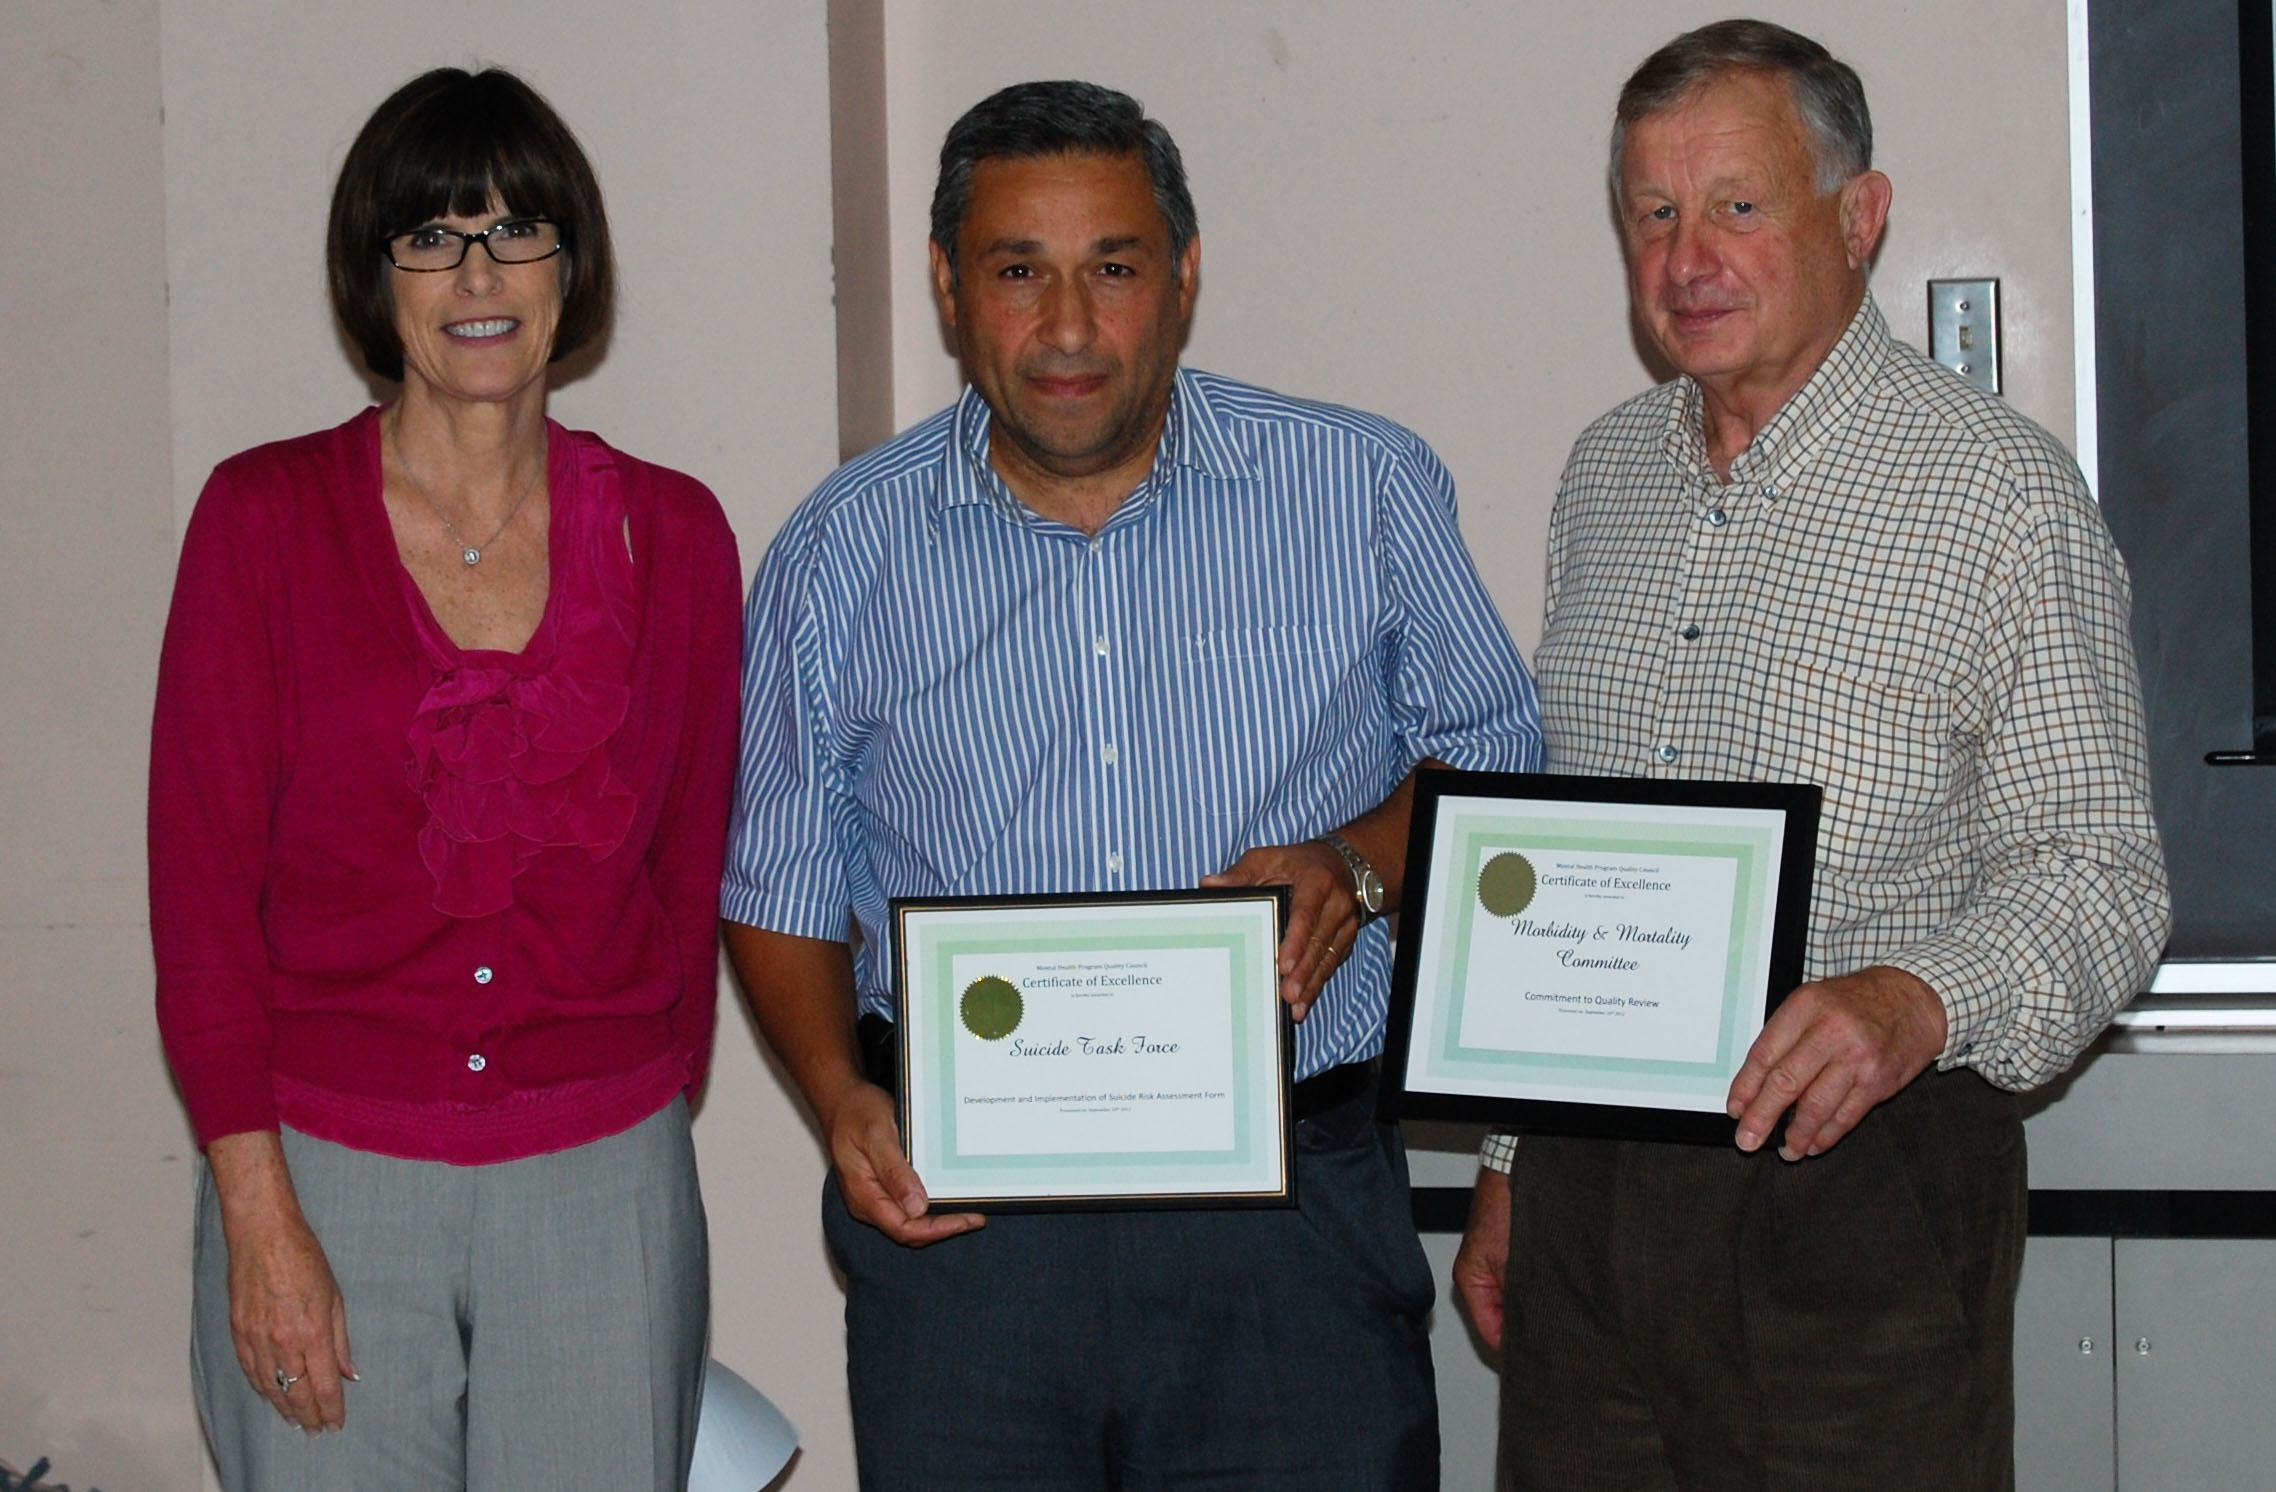 2012-09-24 Receiving 2 awards from NS health authority